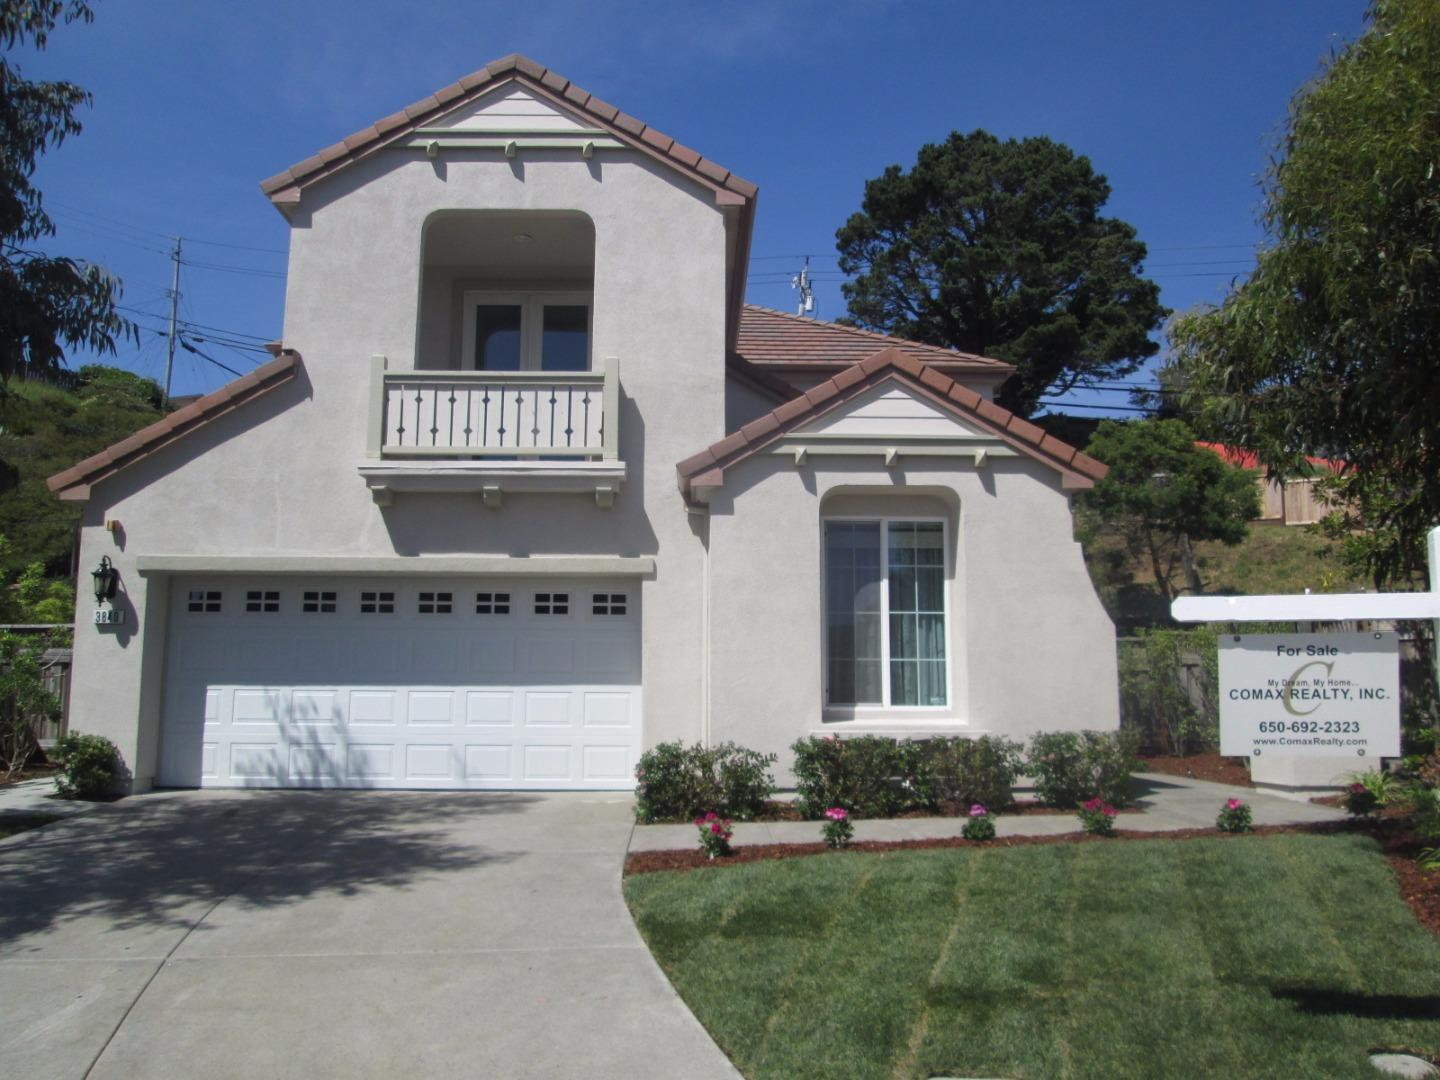 3840 Adriatic Way, San Bruno, CA